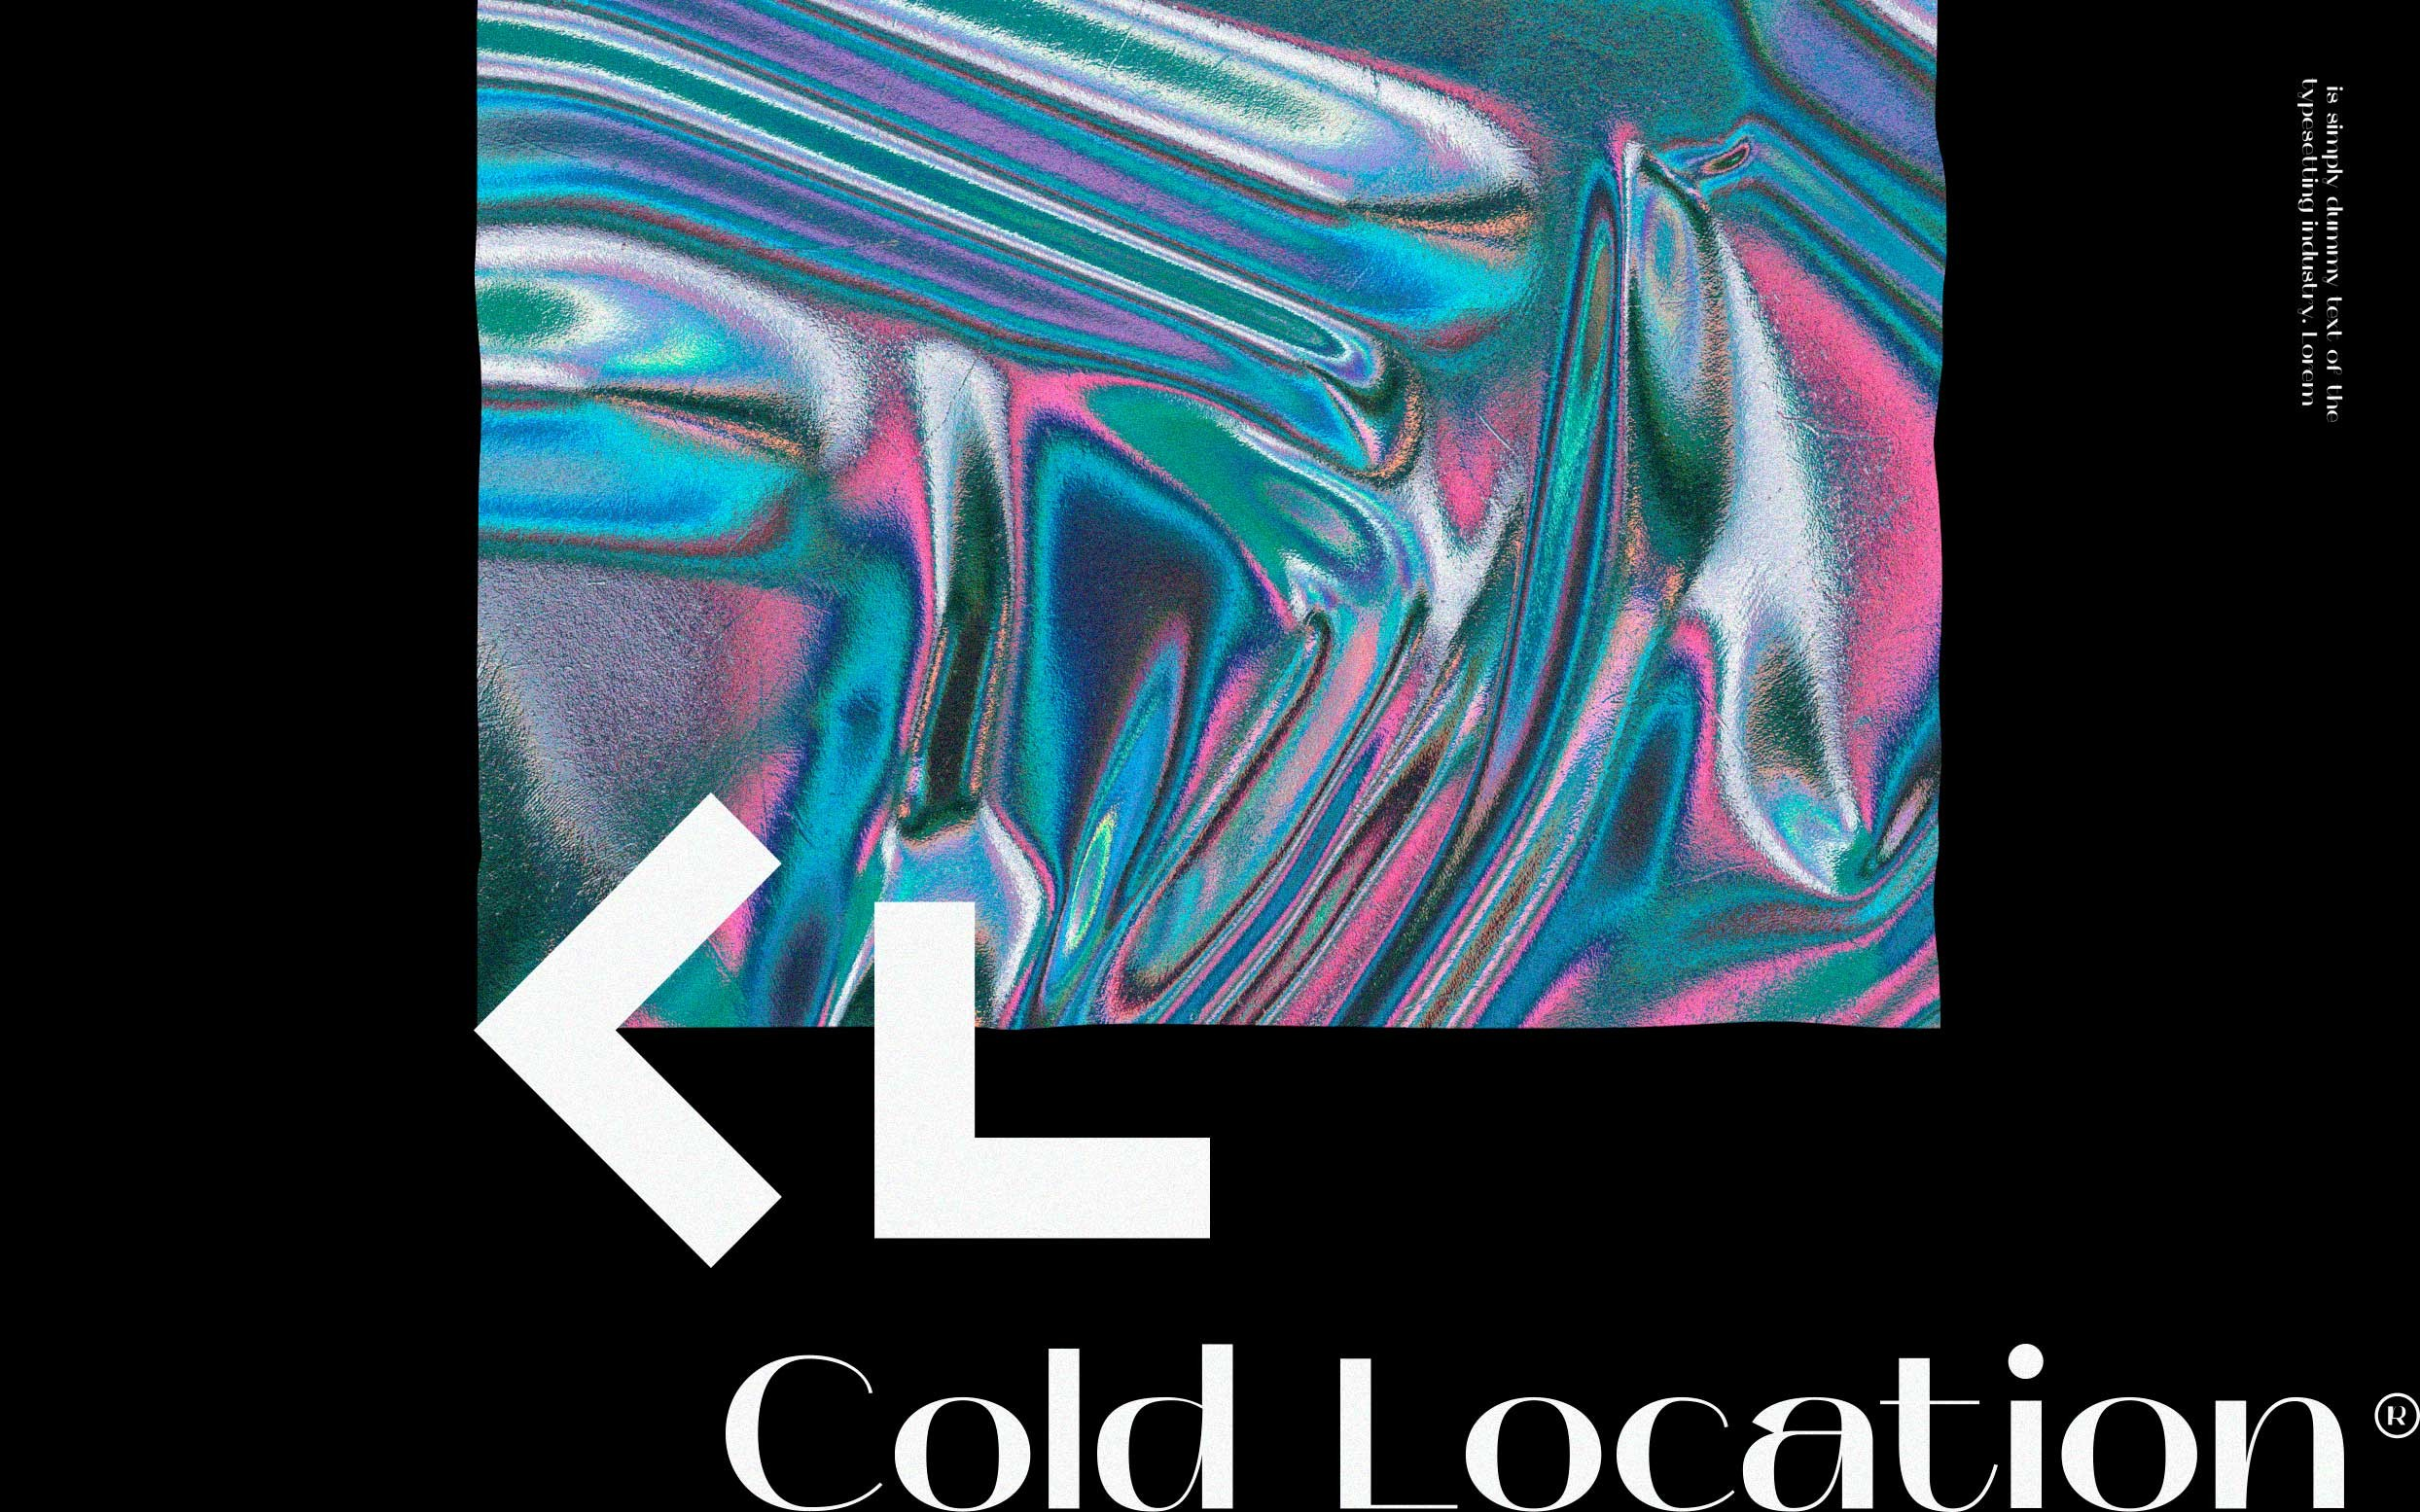 Cold Location